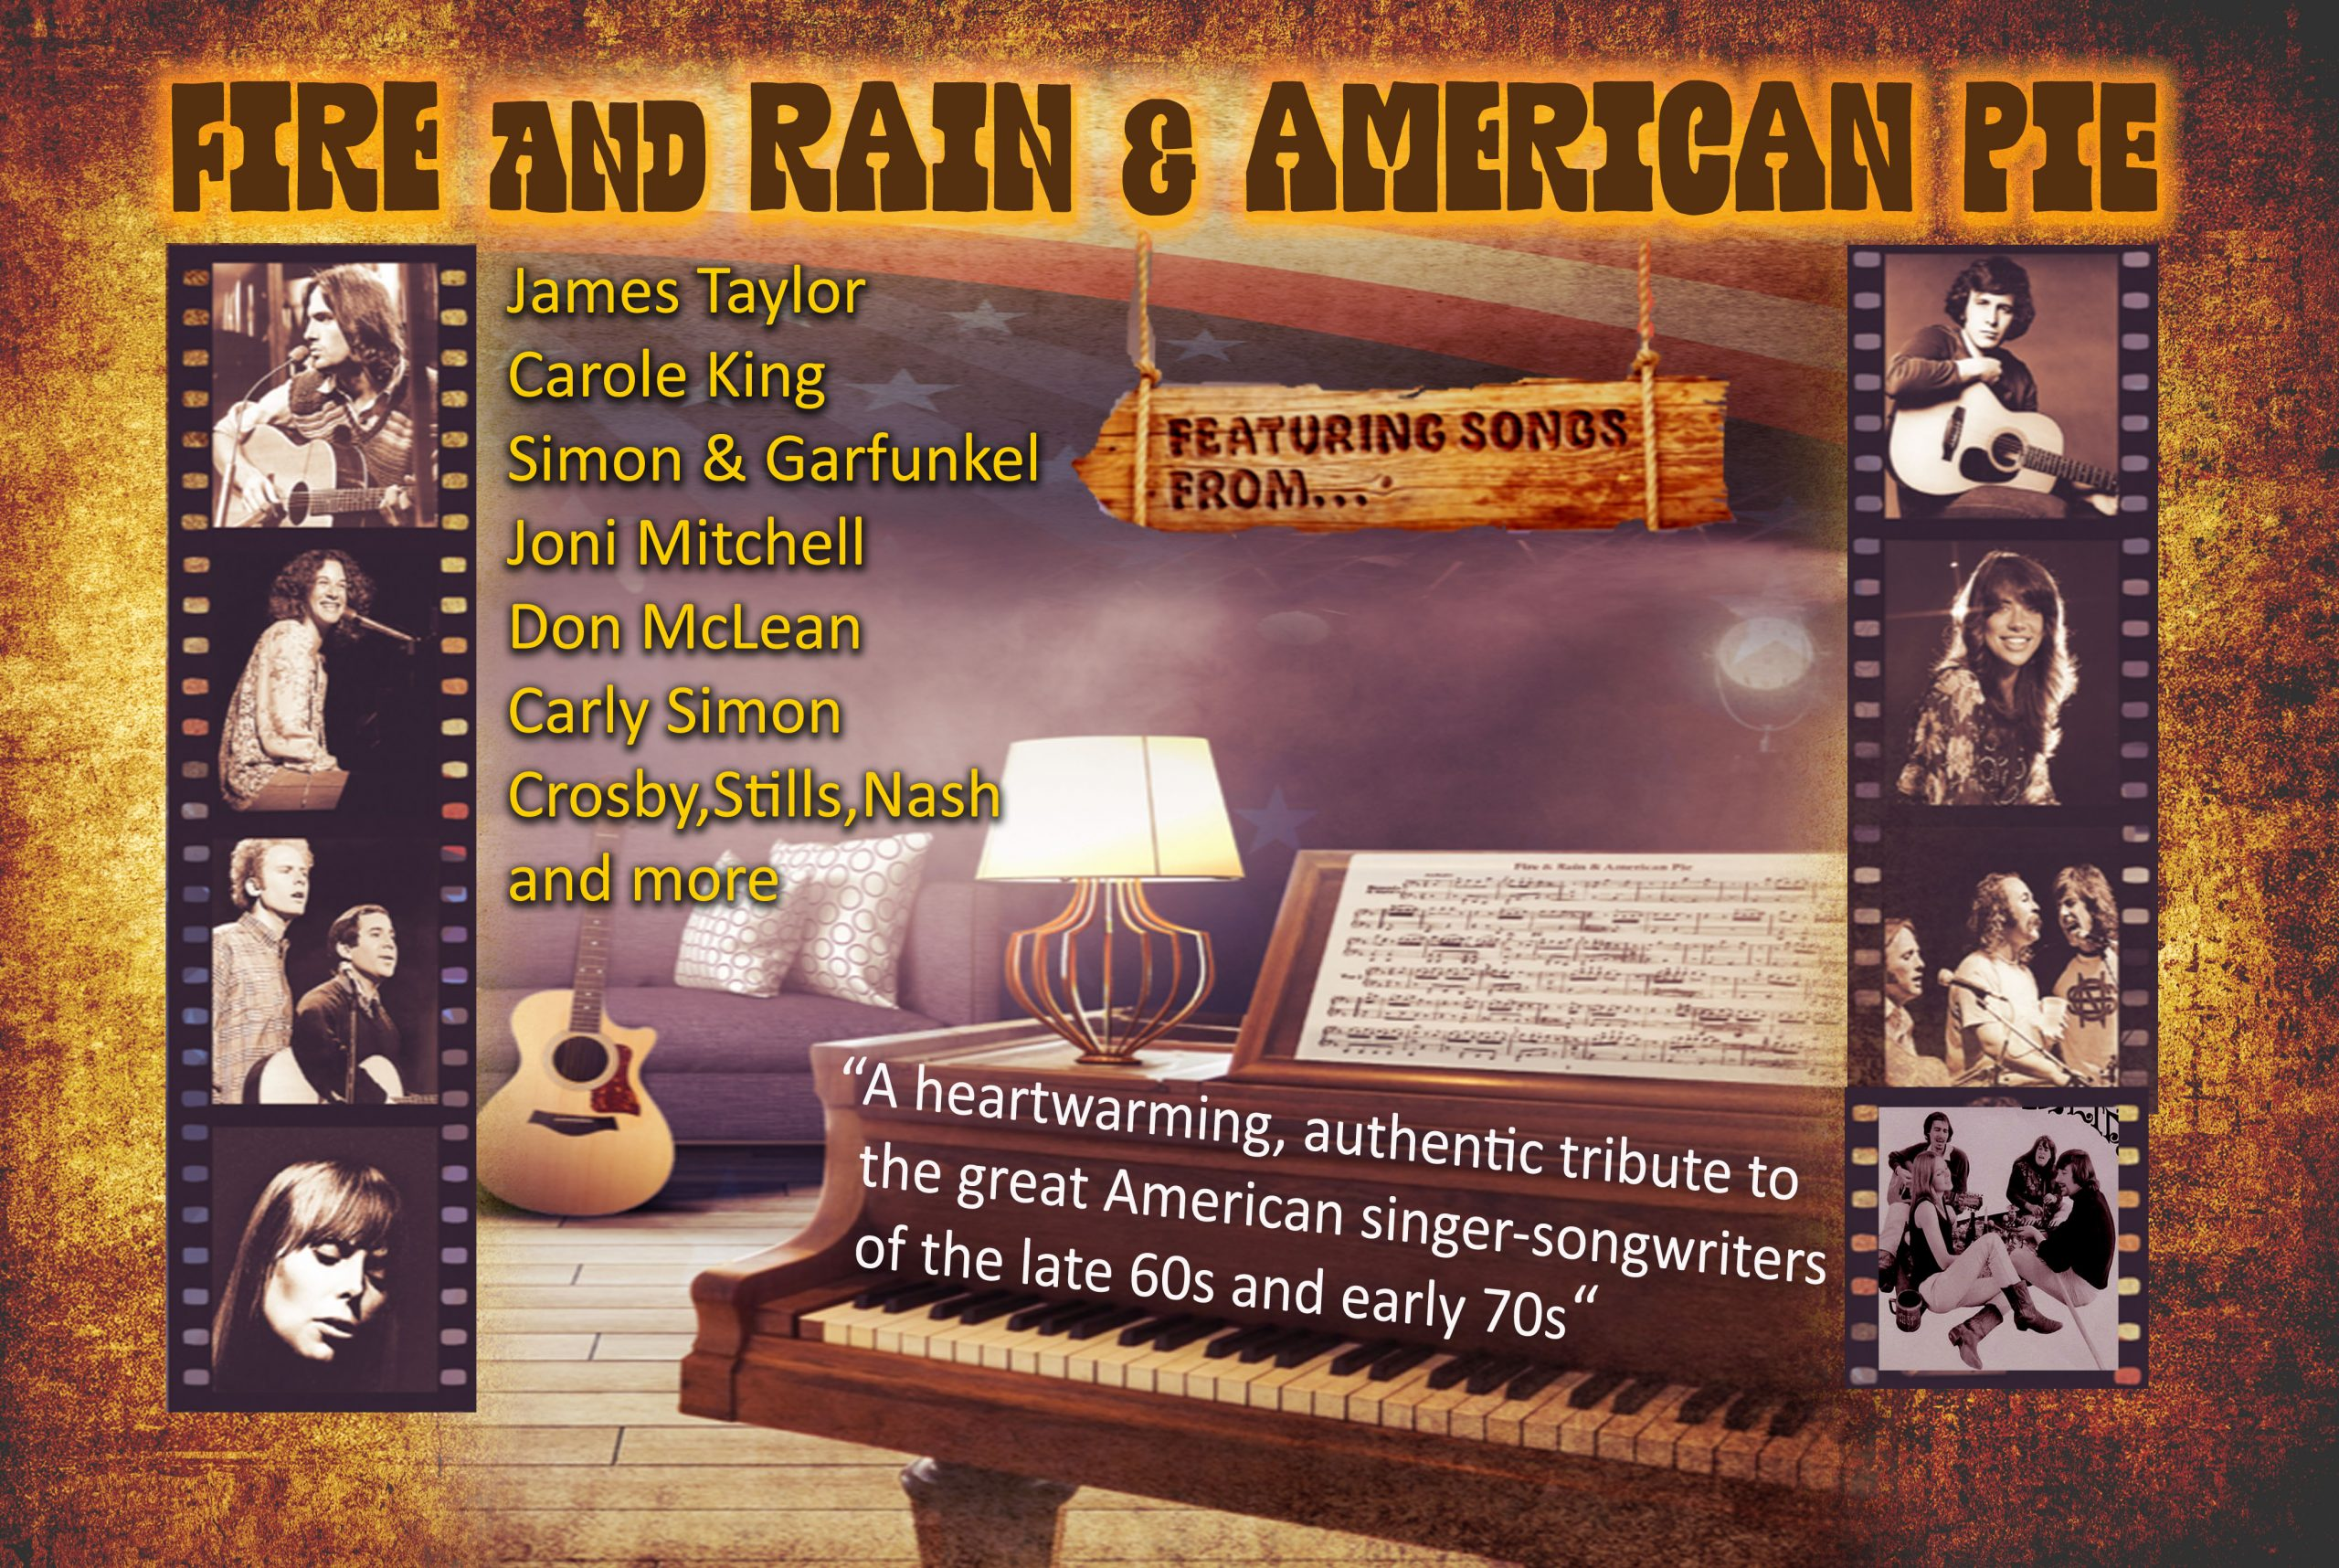 Fire and Rain and American Pie image